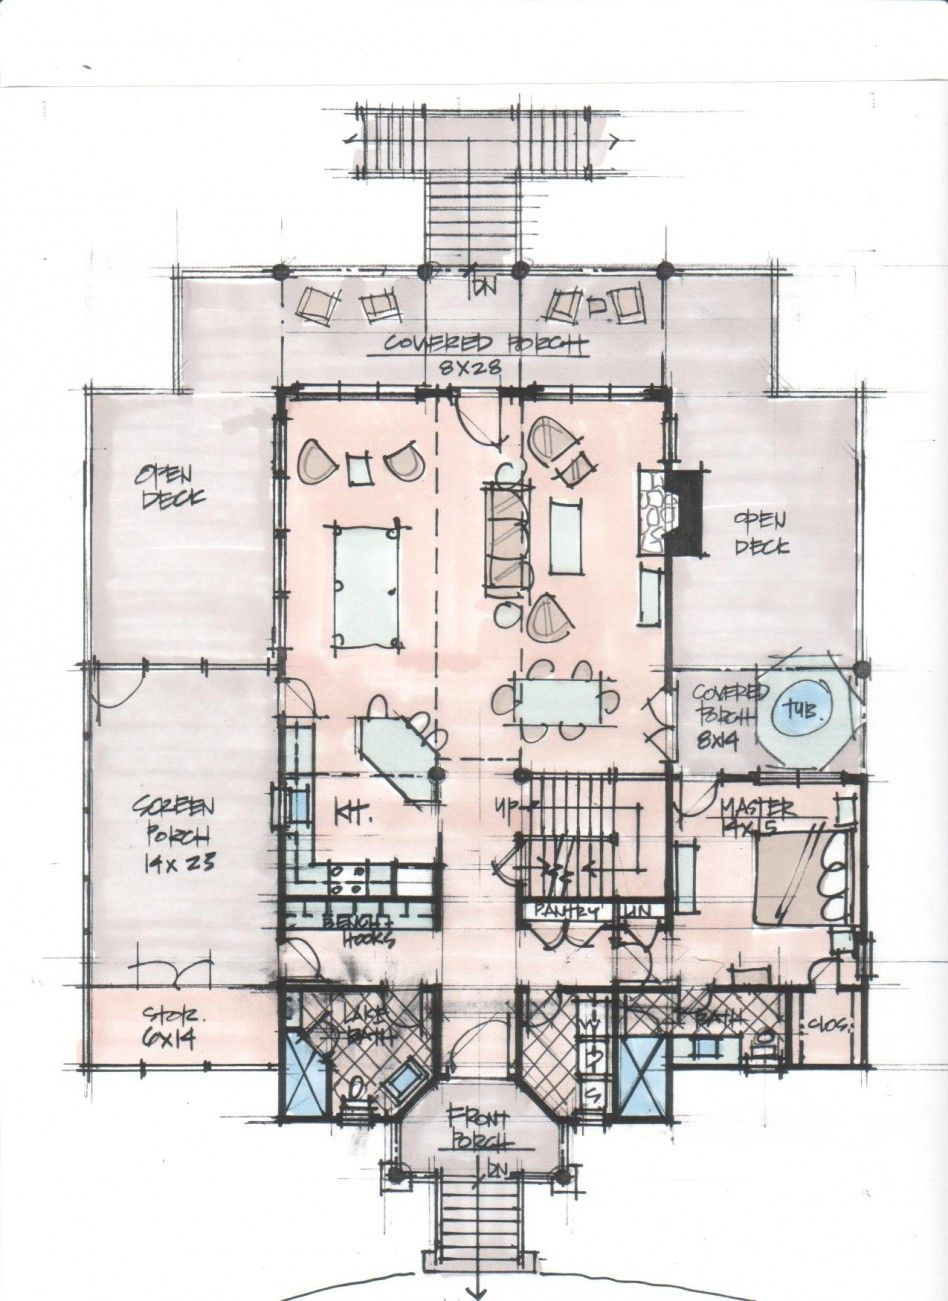 Architecture, Marvelous Floor Plan Design Ideas and Inspirations ...